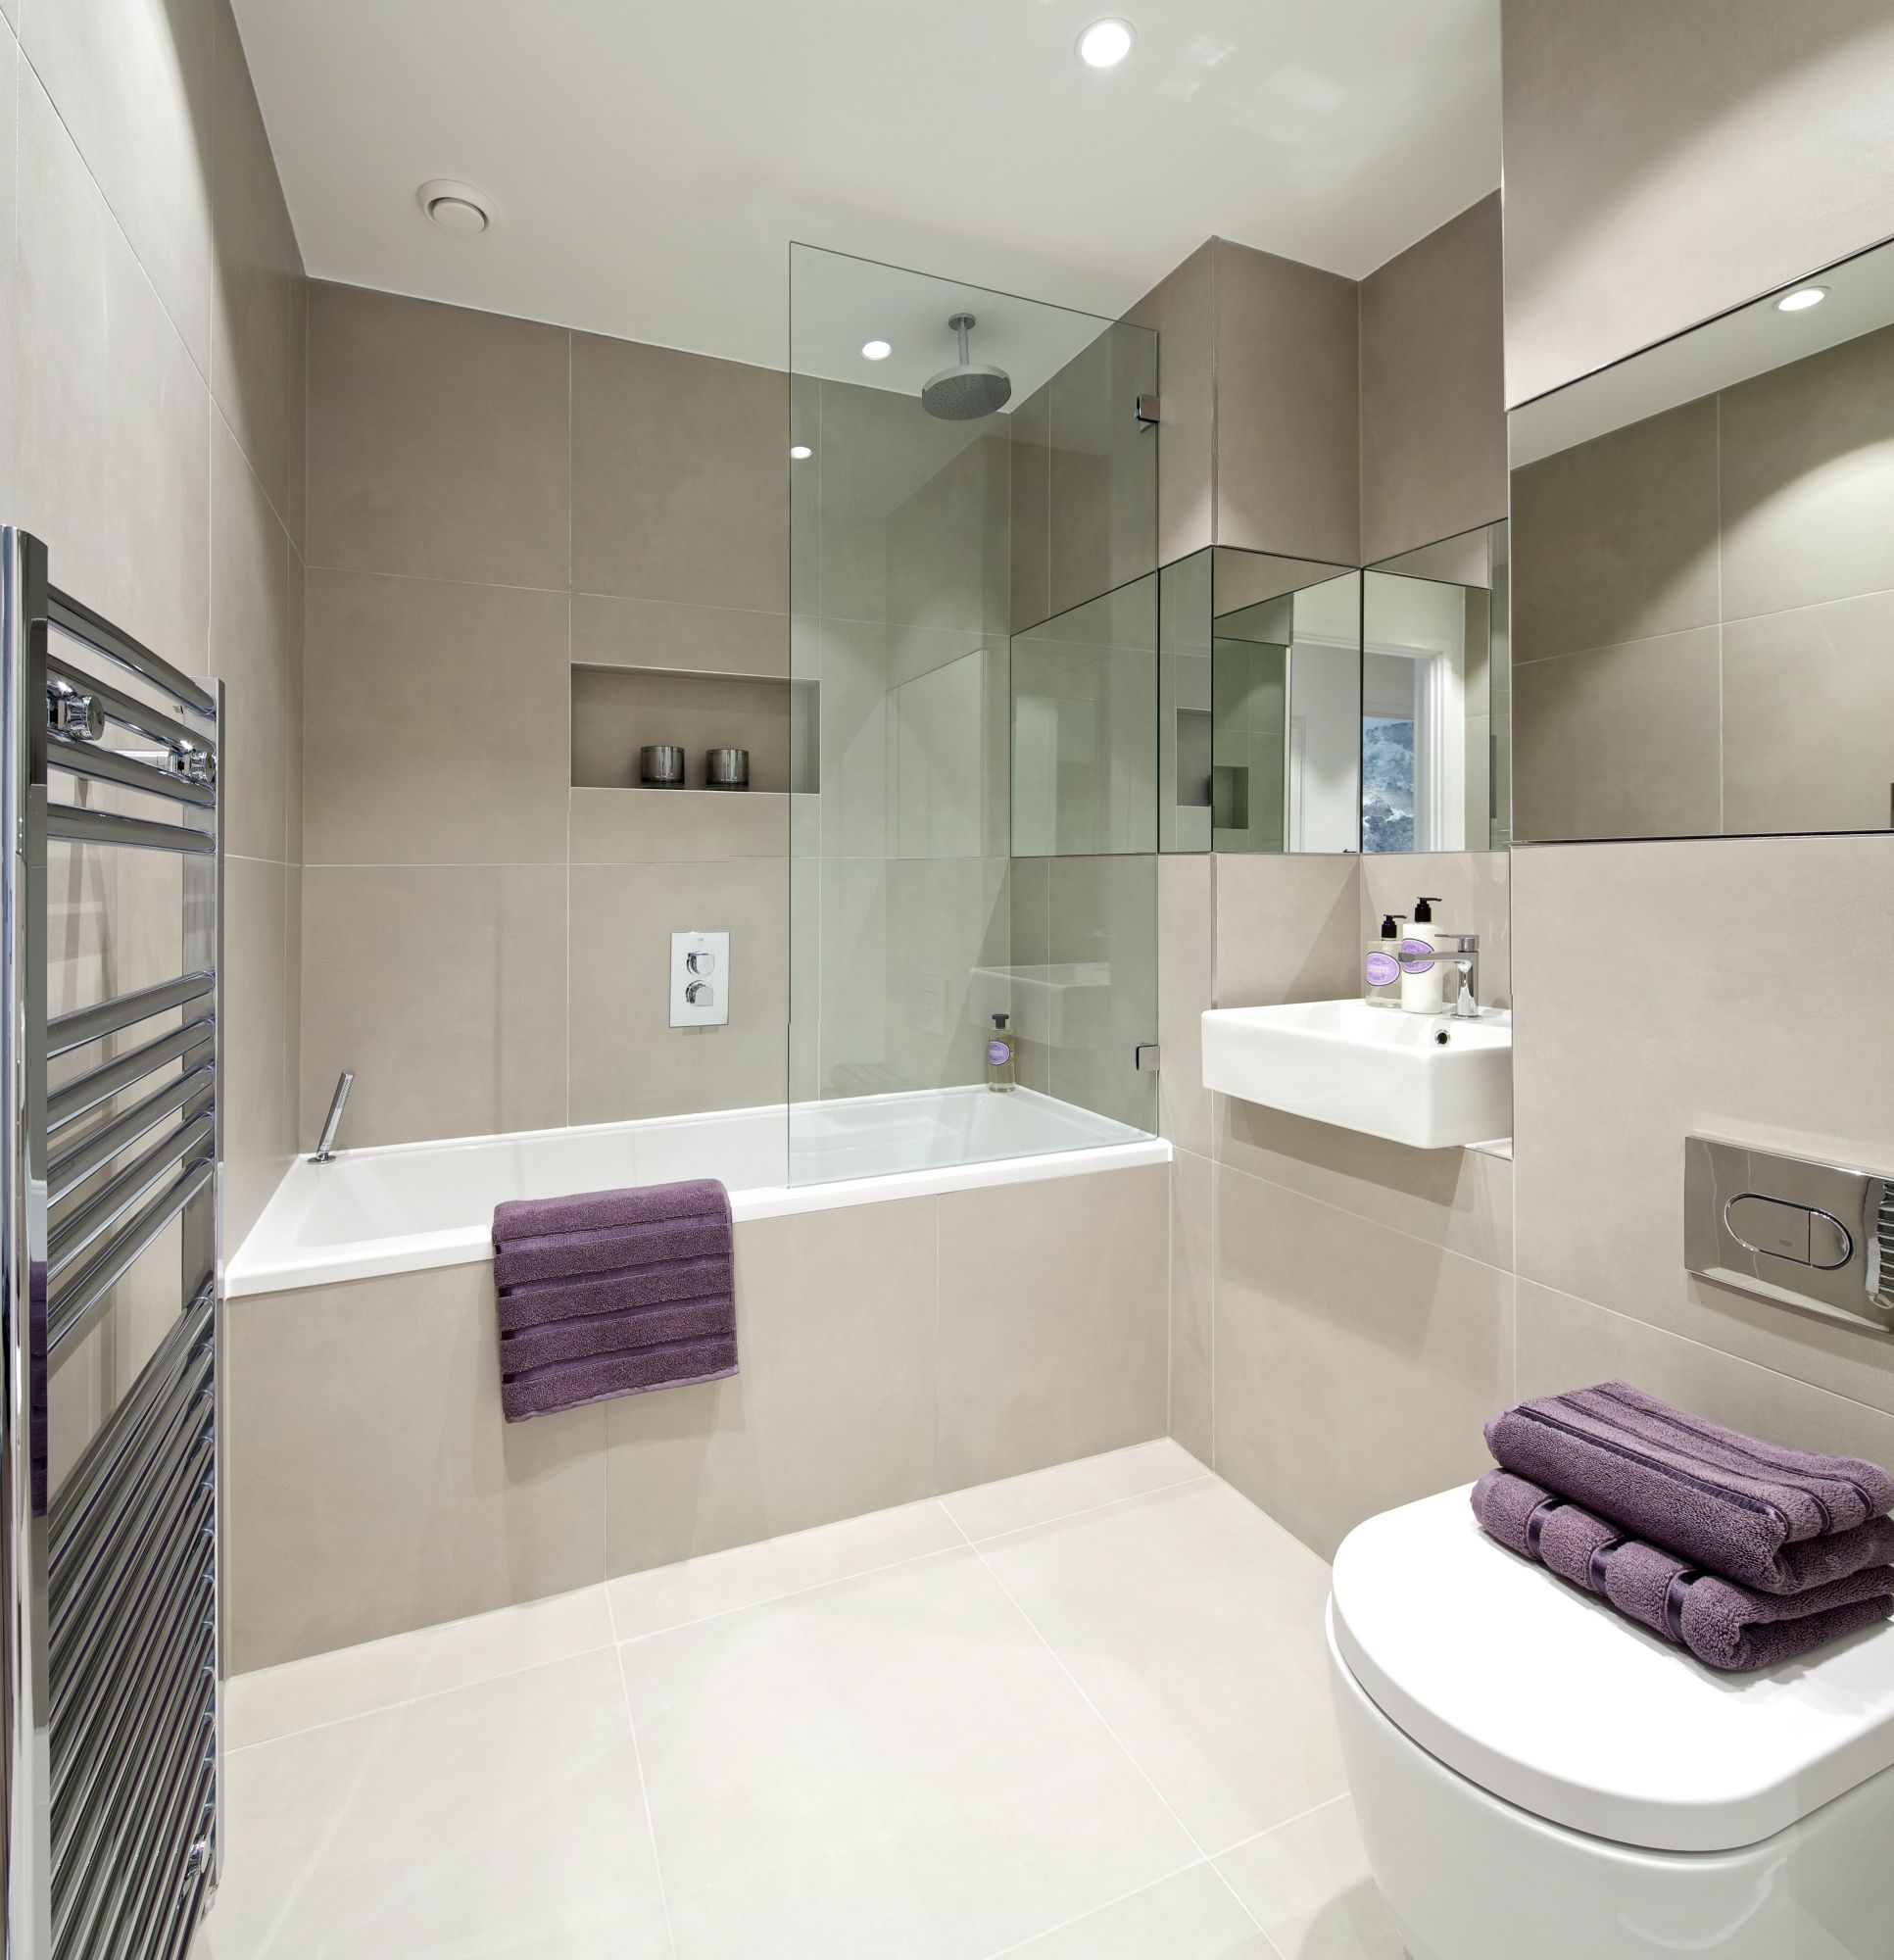 Stunning home interiors bathroom another stunning show for Bathroom interior design pictures